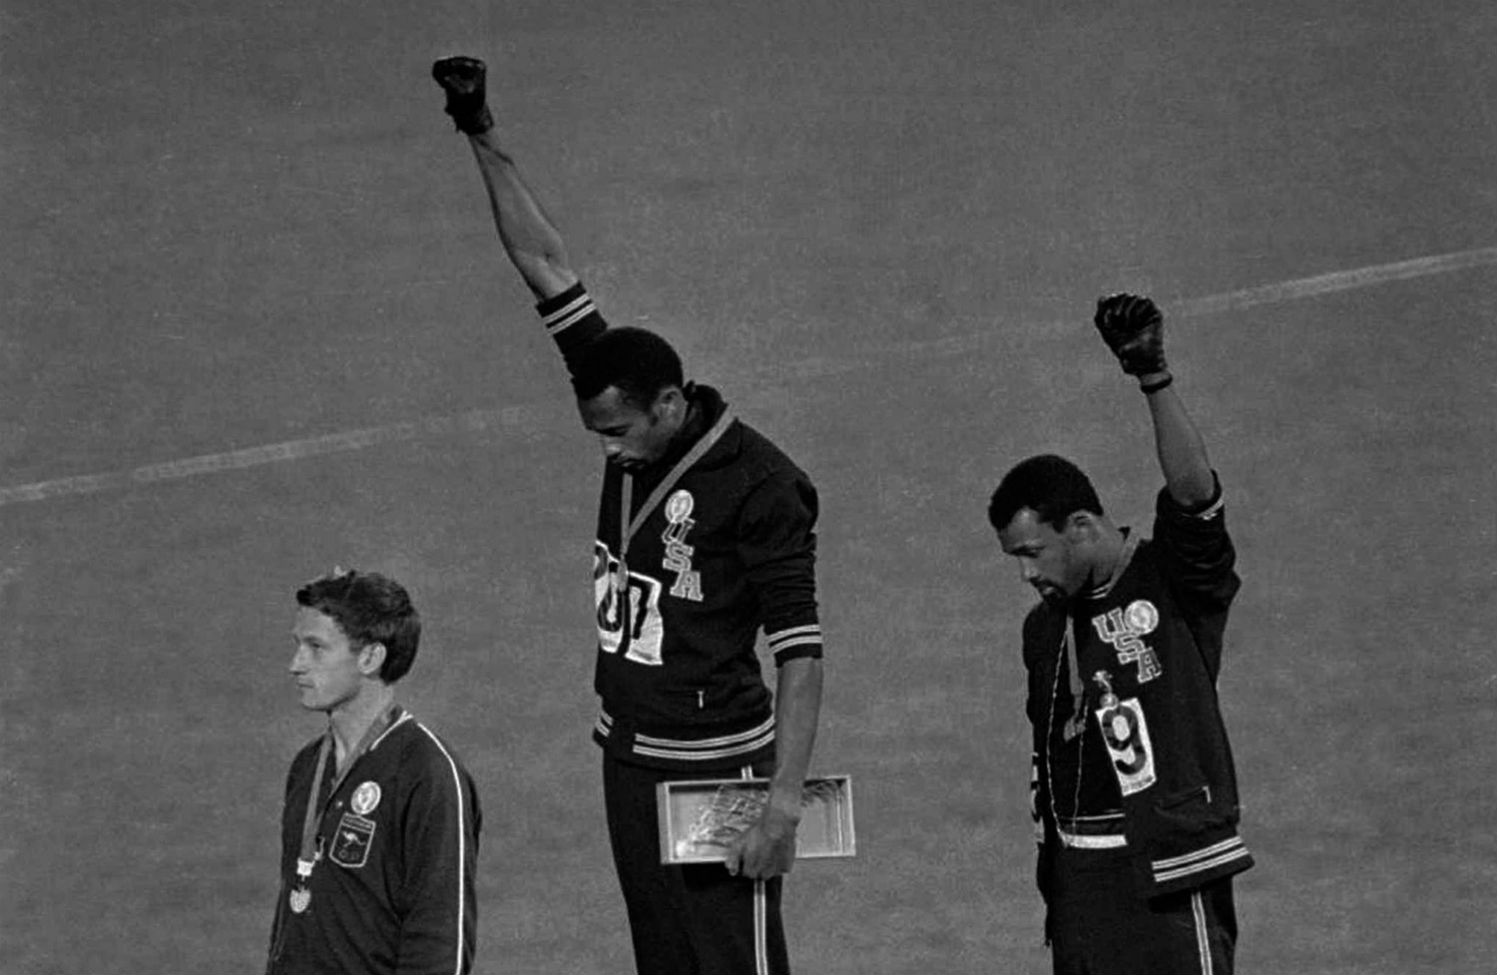 John-Carlos-Tommie-Smith-and-Peter-Norman-during-their-famous-protest-at-the-1968-Olympic-games-in-Mexico-City